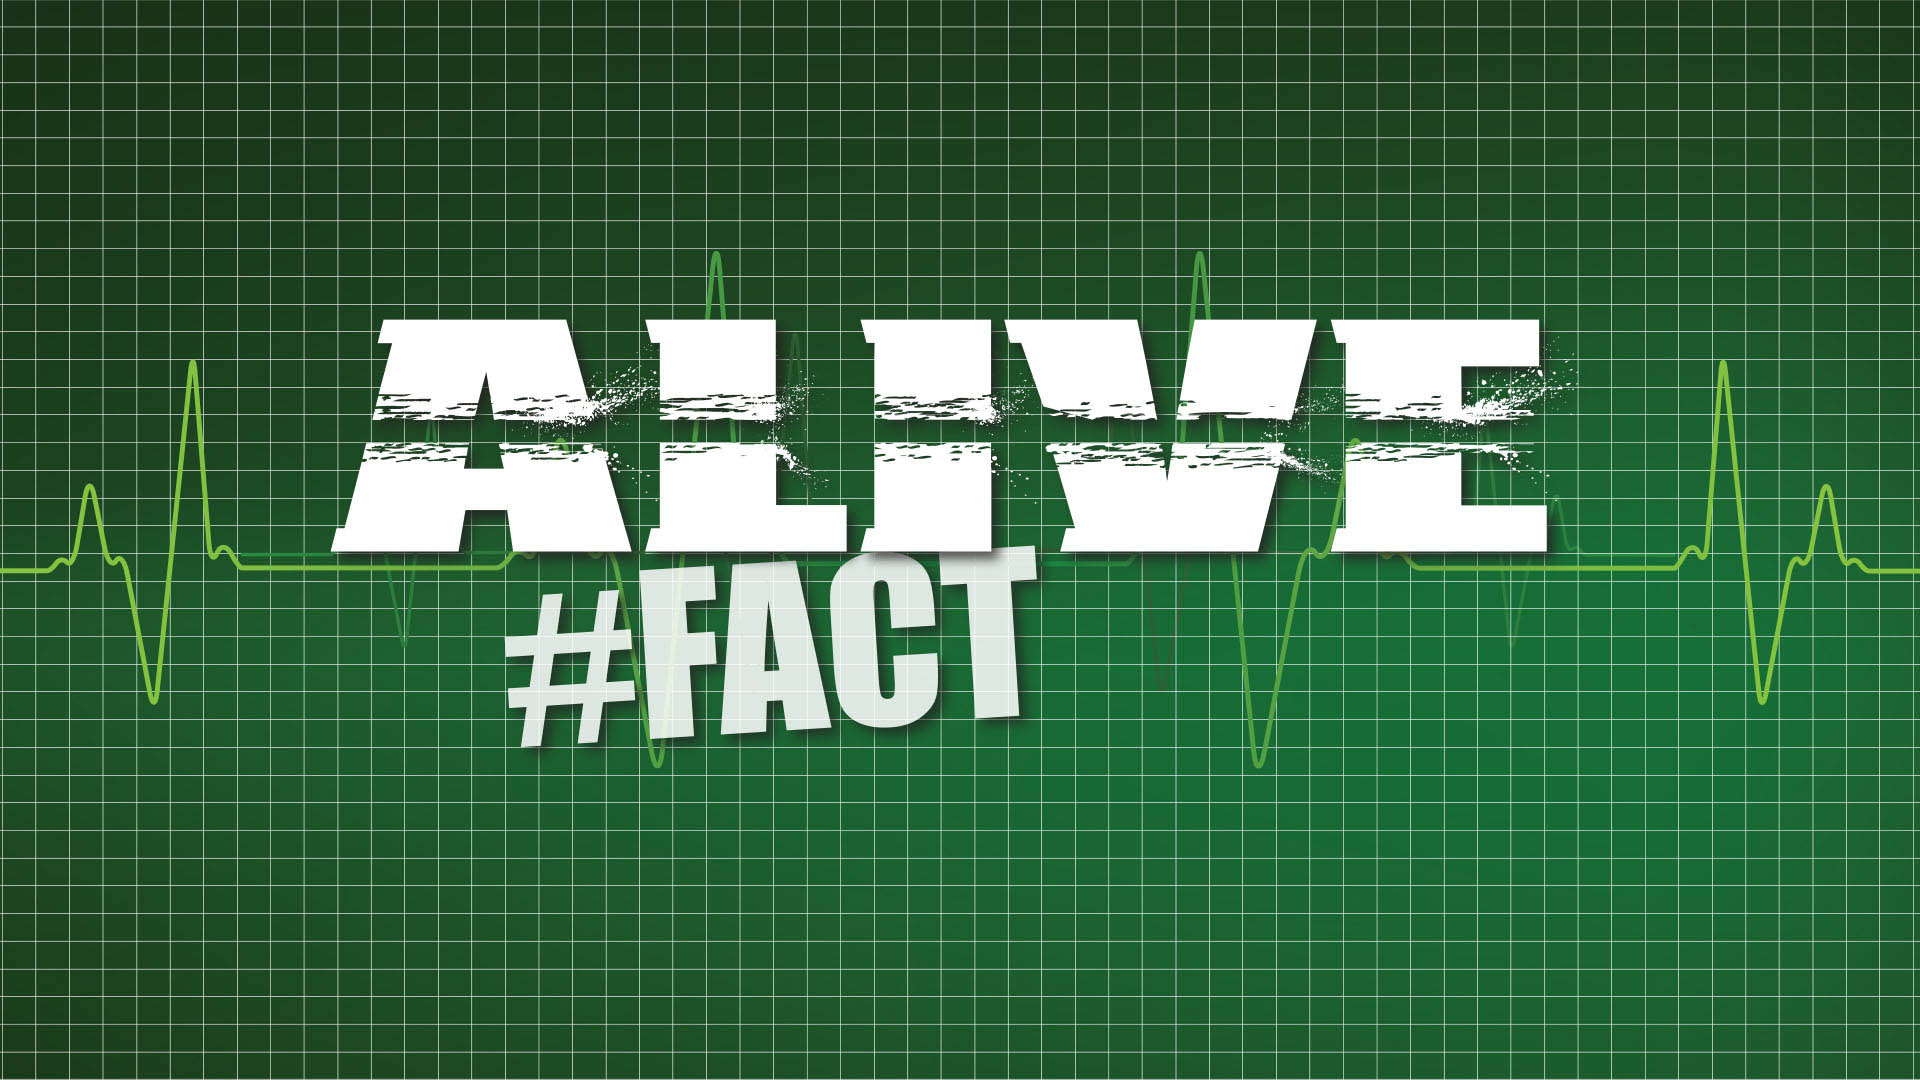 Alive #Fact